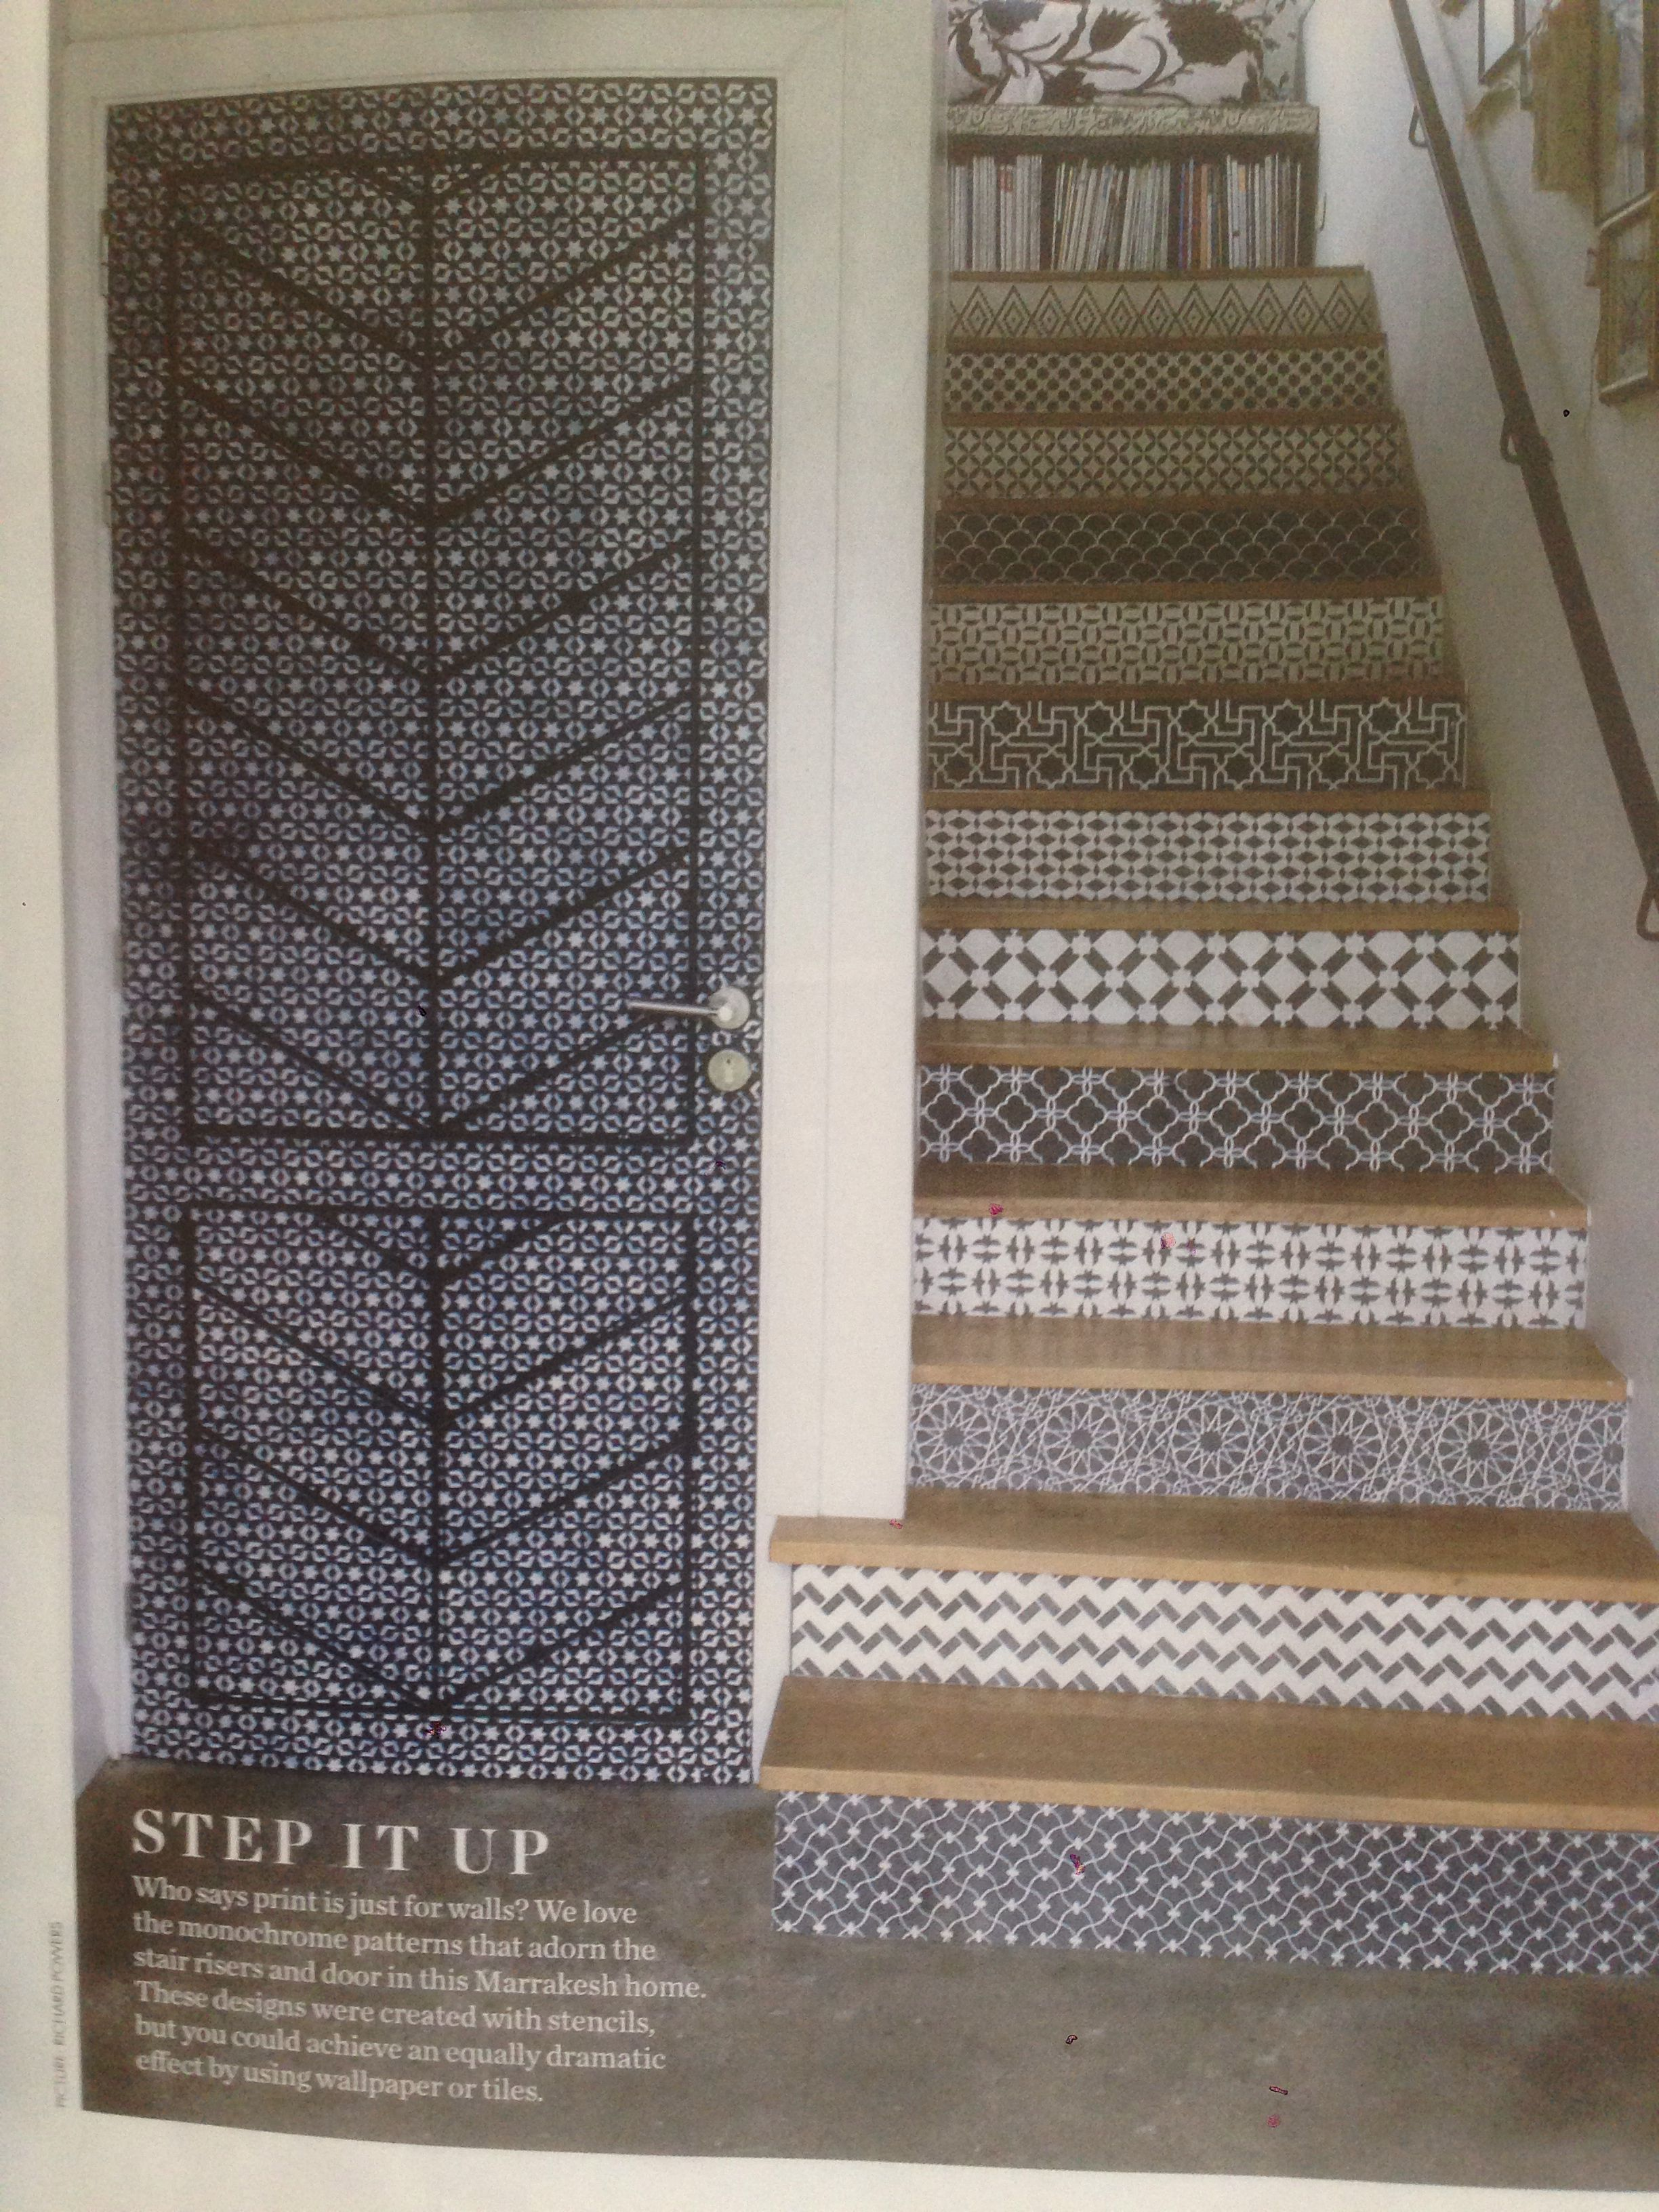 Elle Decoration May 14 Staircase Design Tiled Staircase House Styles